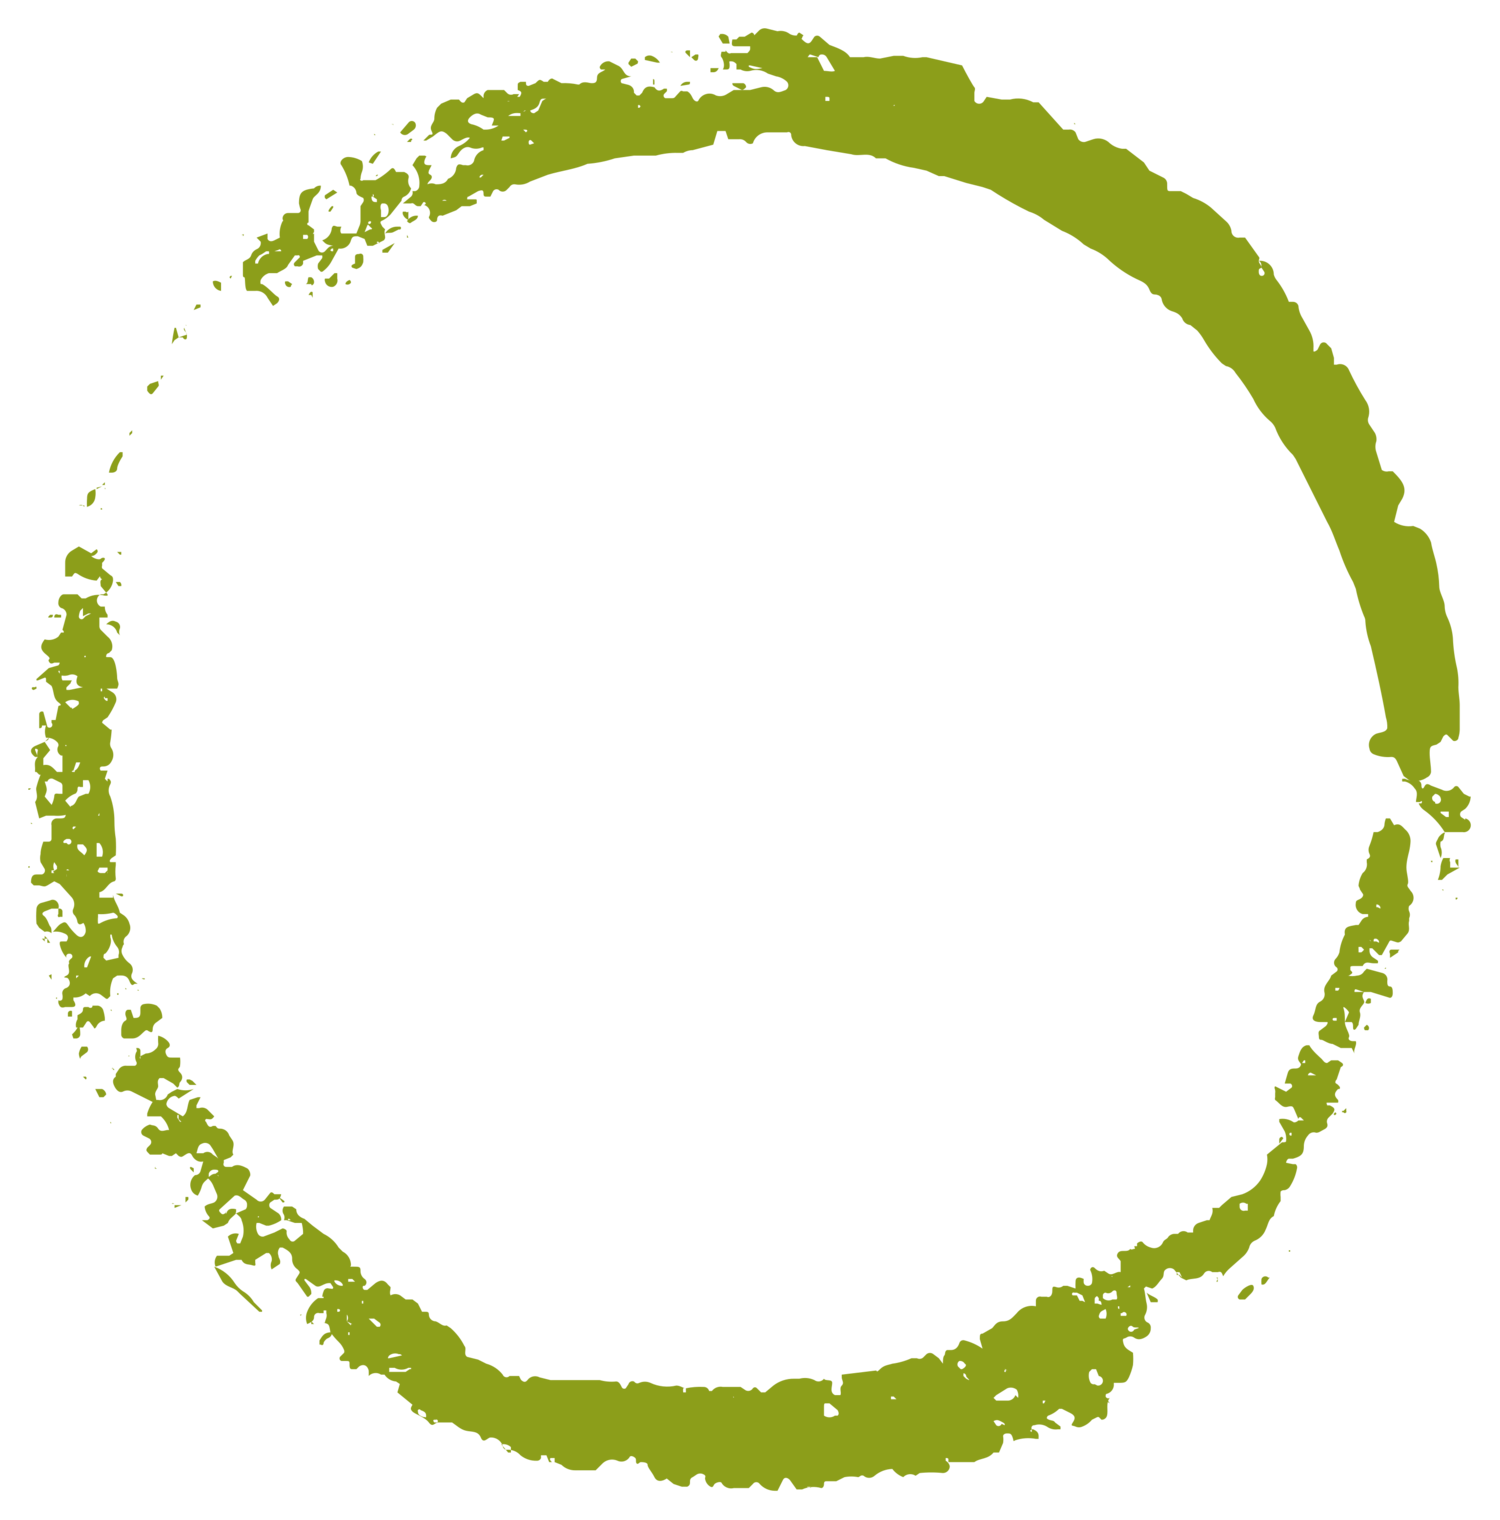 St. Johns Ale Trail